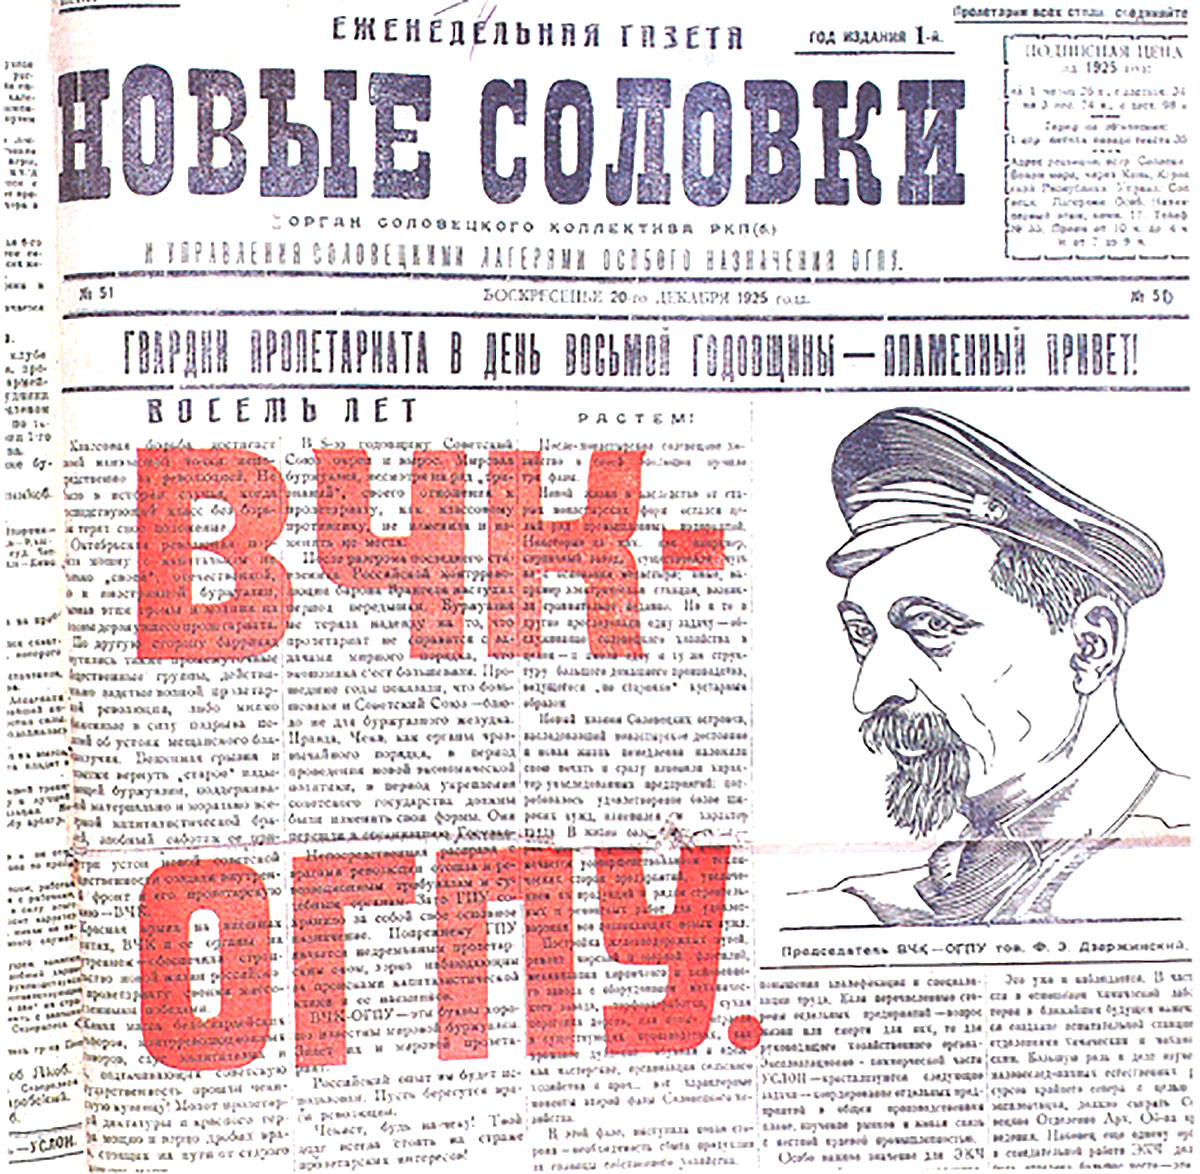 Novye Solovki (New Solovki) Newspaper, 1925